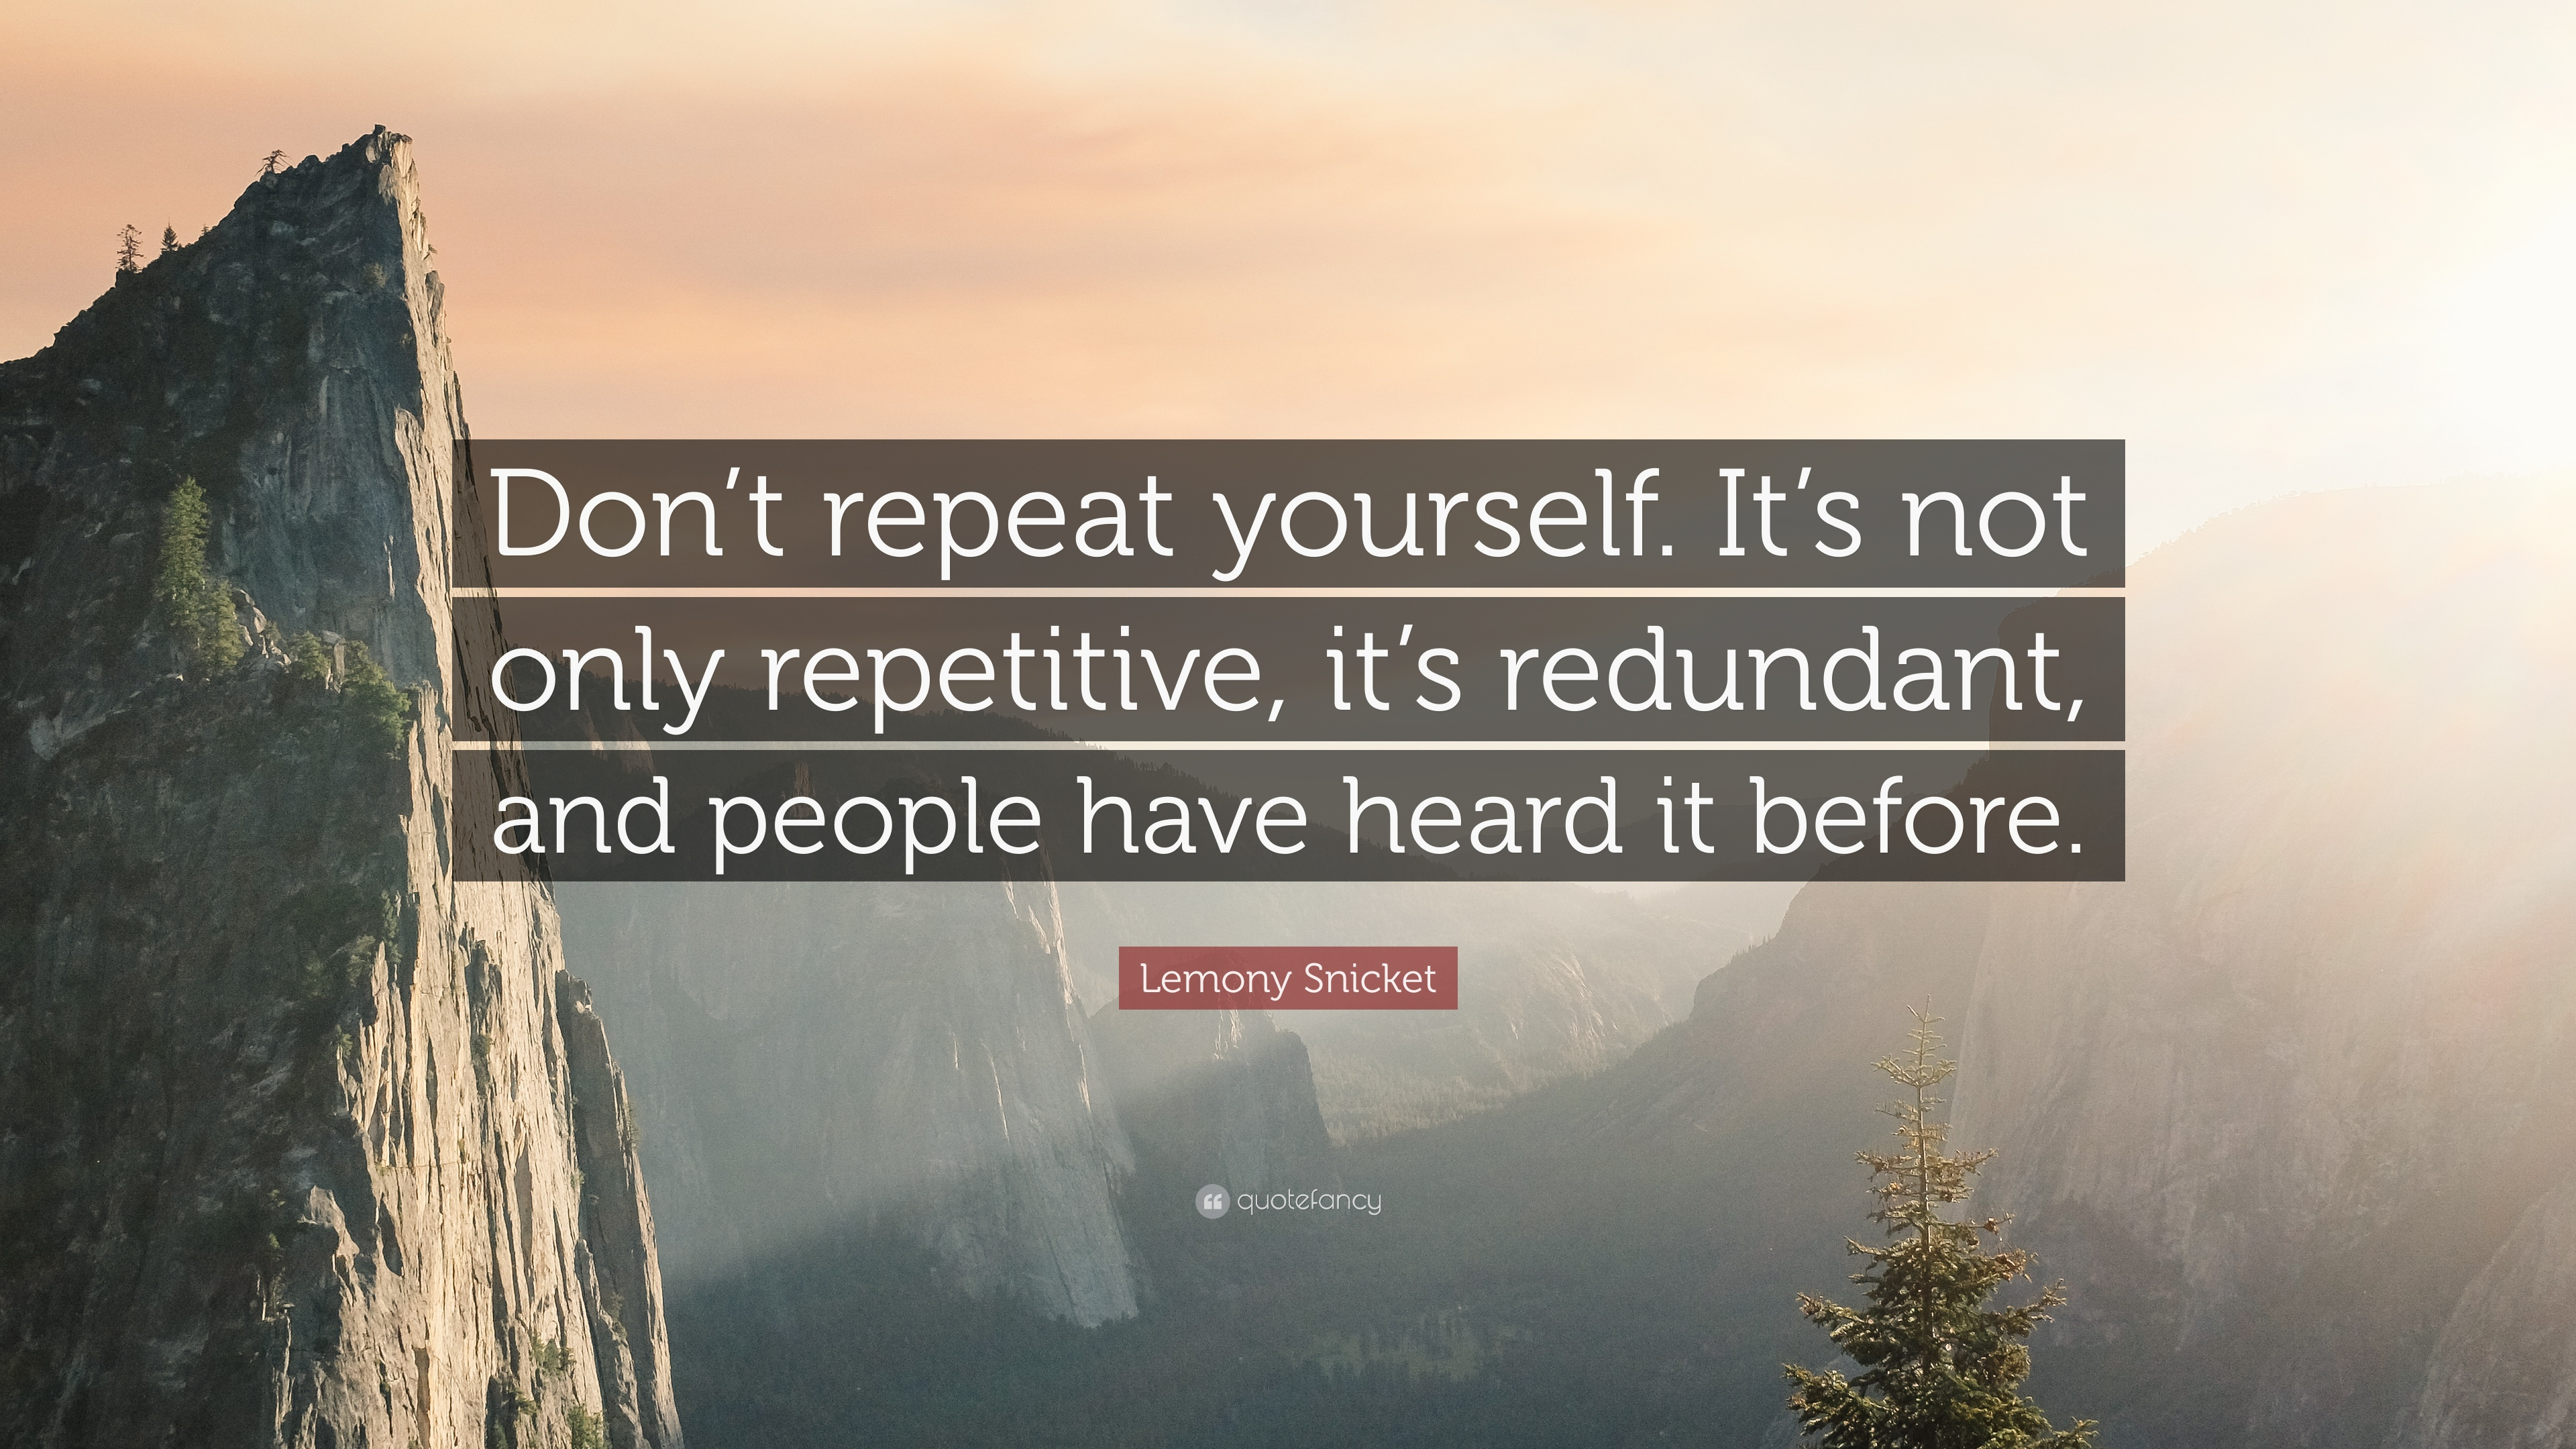 380348-Lemony-Snicket-Quote-Don-t-repeat-yourself-It-s-not-only